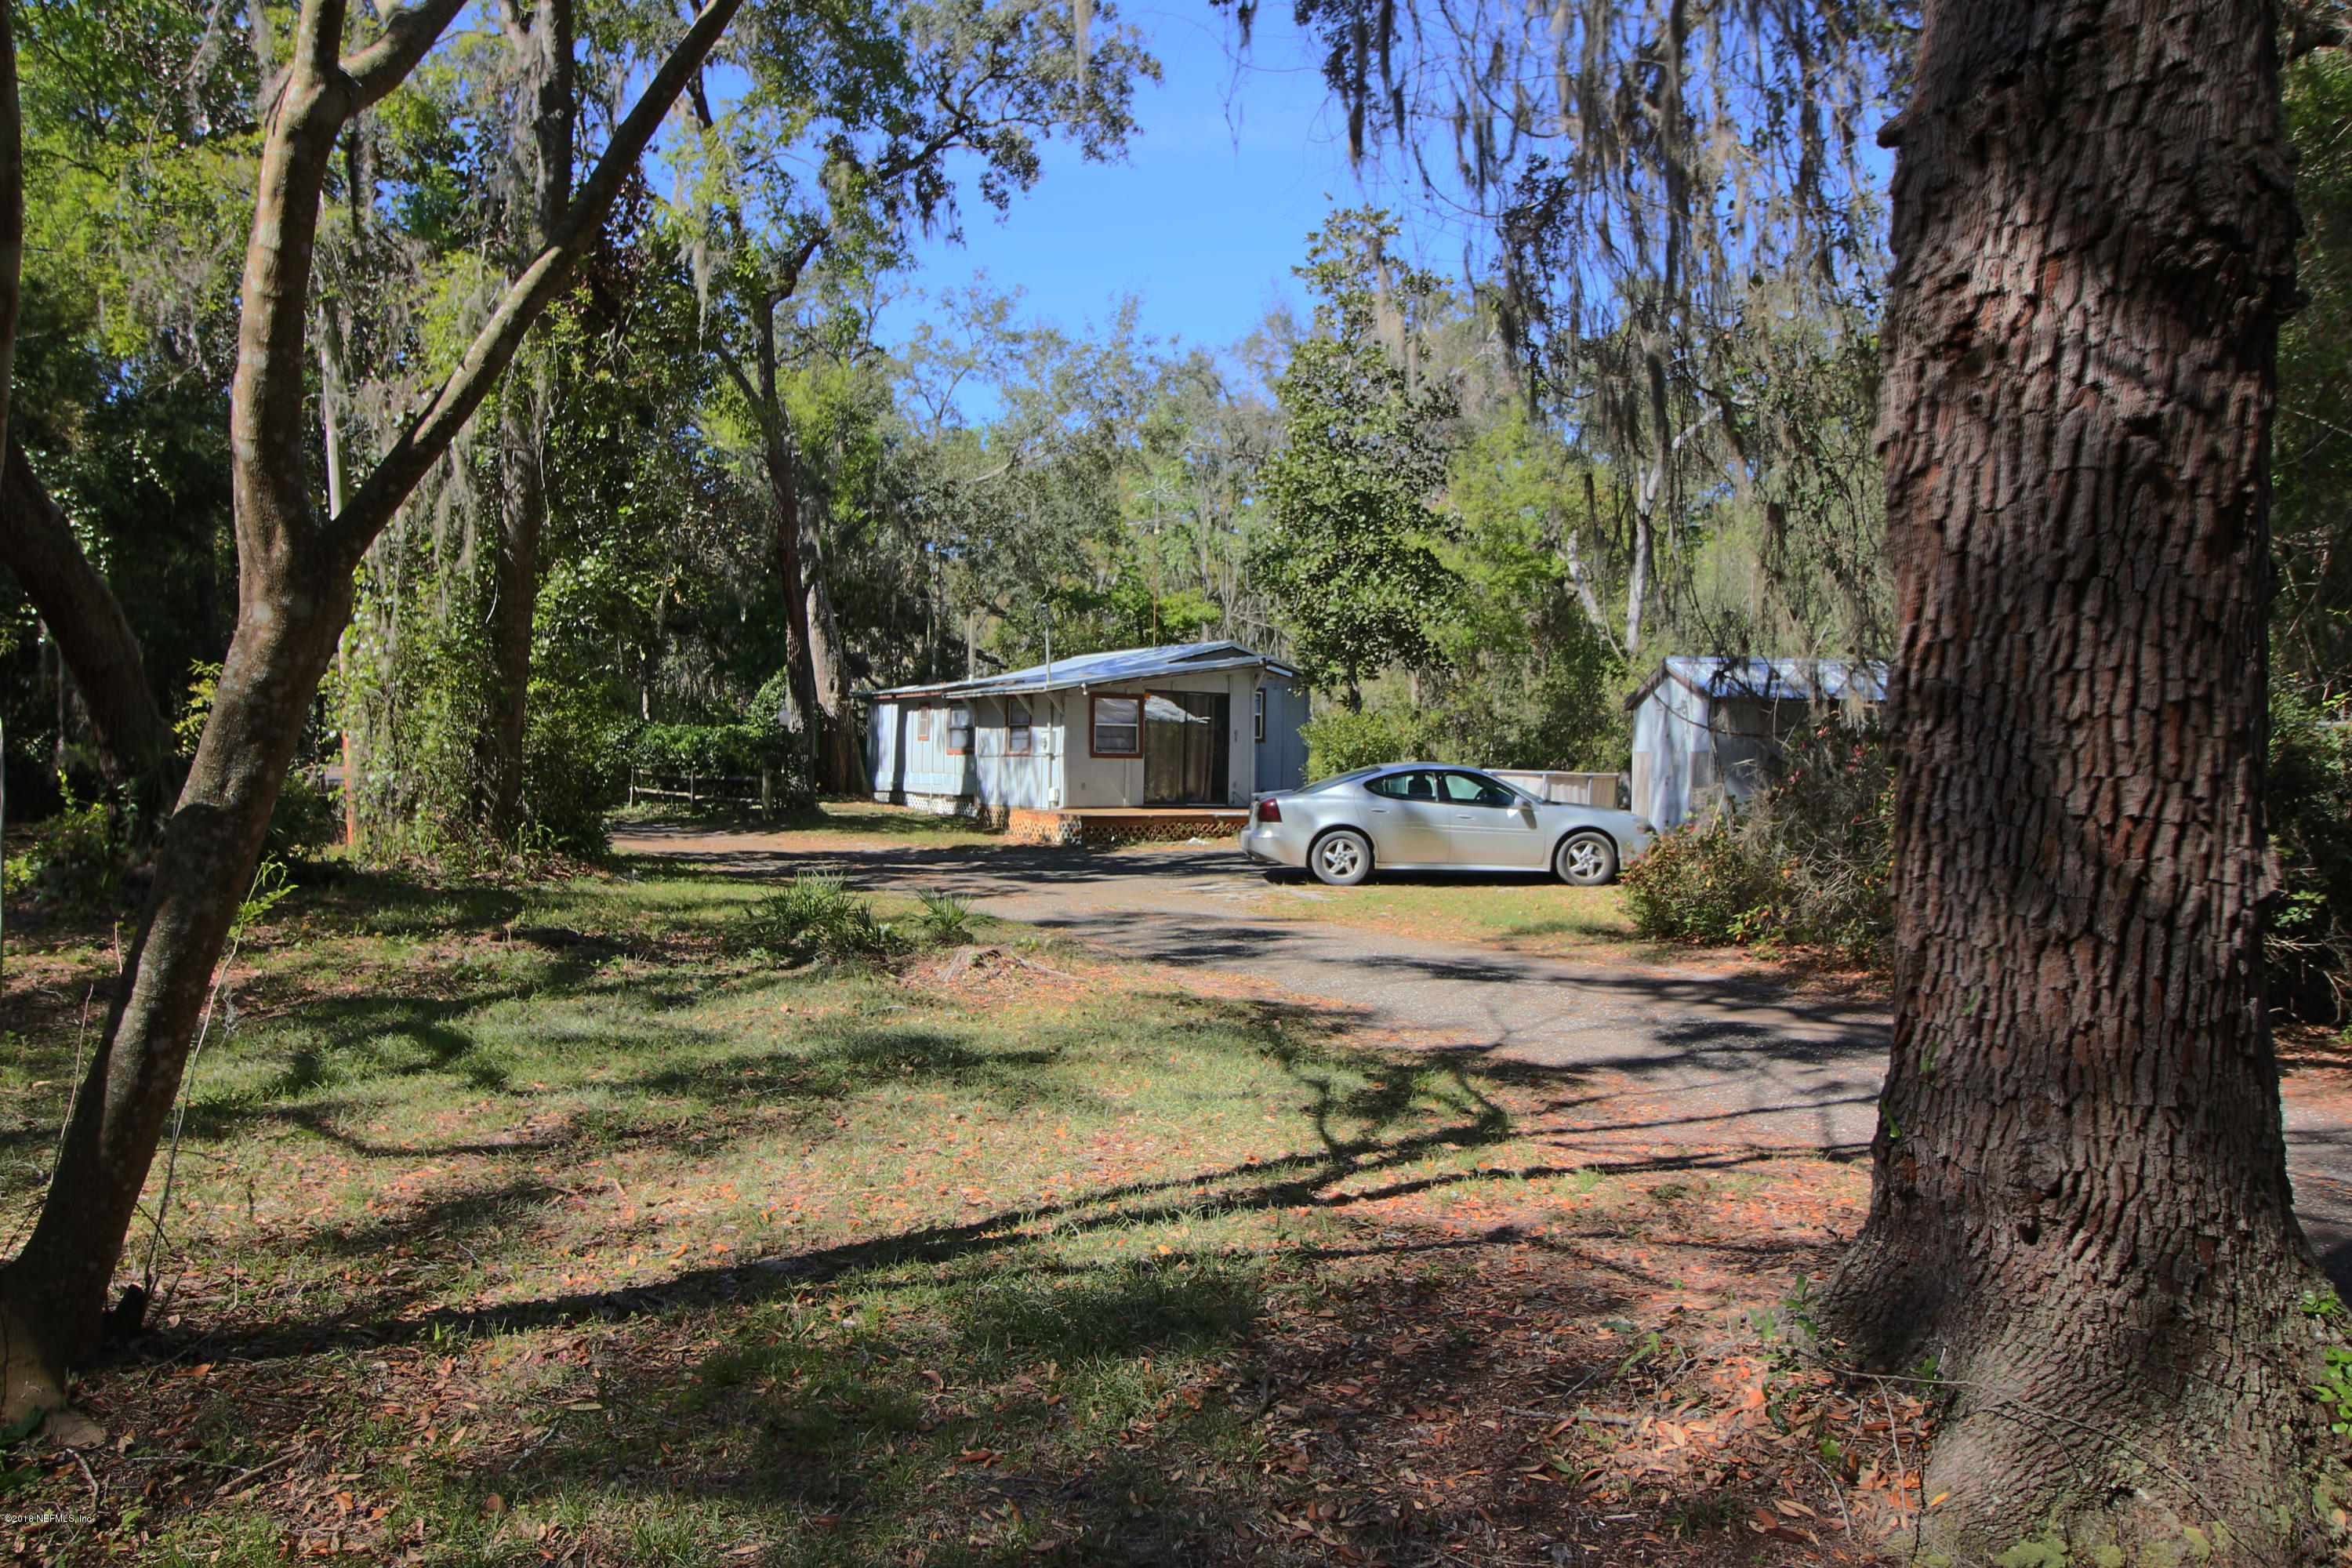 6722 COUNTY ROAD 214, KEYSTONE HEIGHTS, FLORIDA 32656, 3 Bedrooms Bedrooms, ,2 BathroomsBathrooms,Residential - single family,For sale,COUNTY ROAD 214,921849